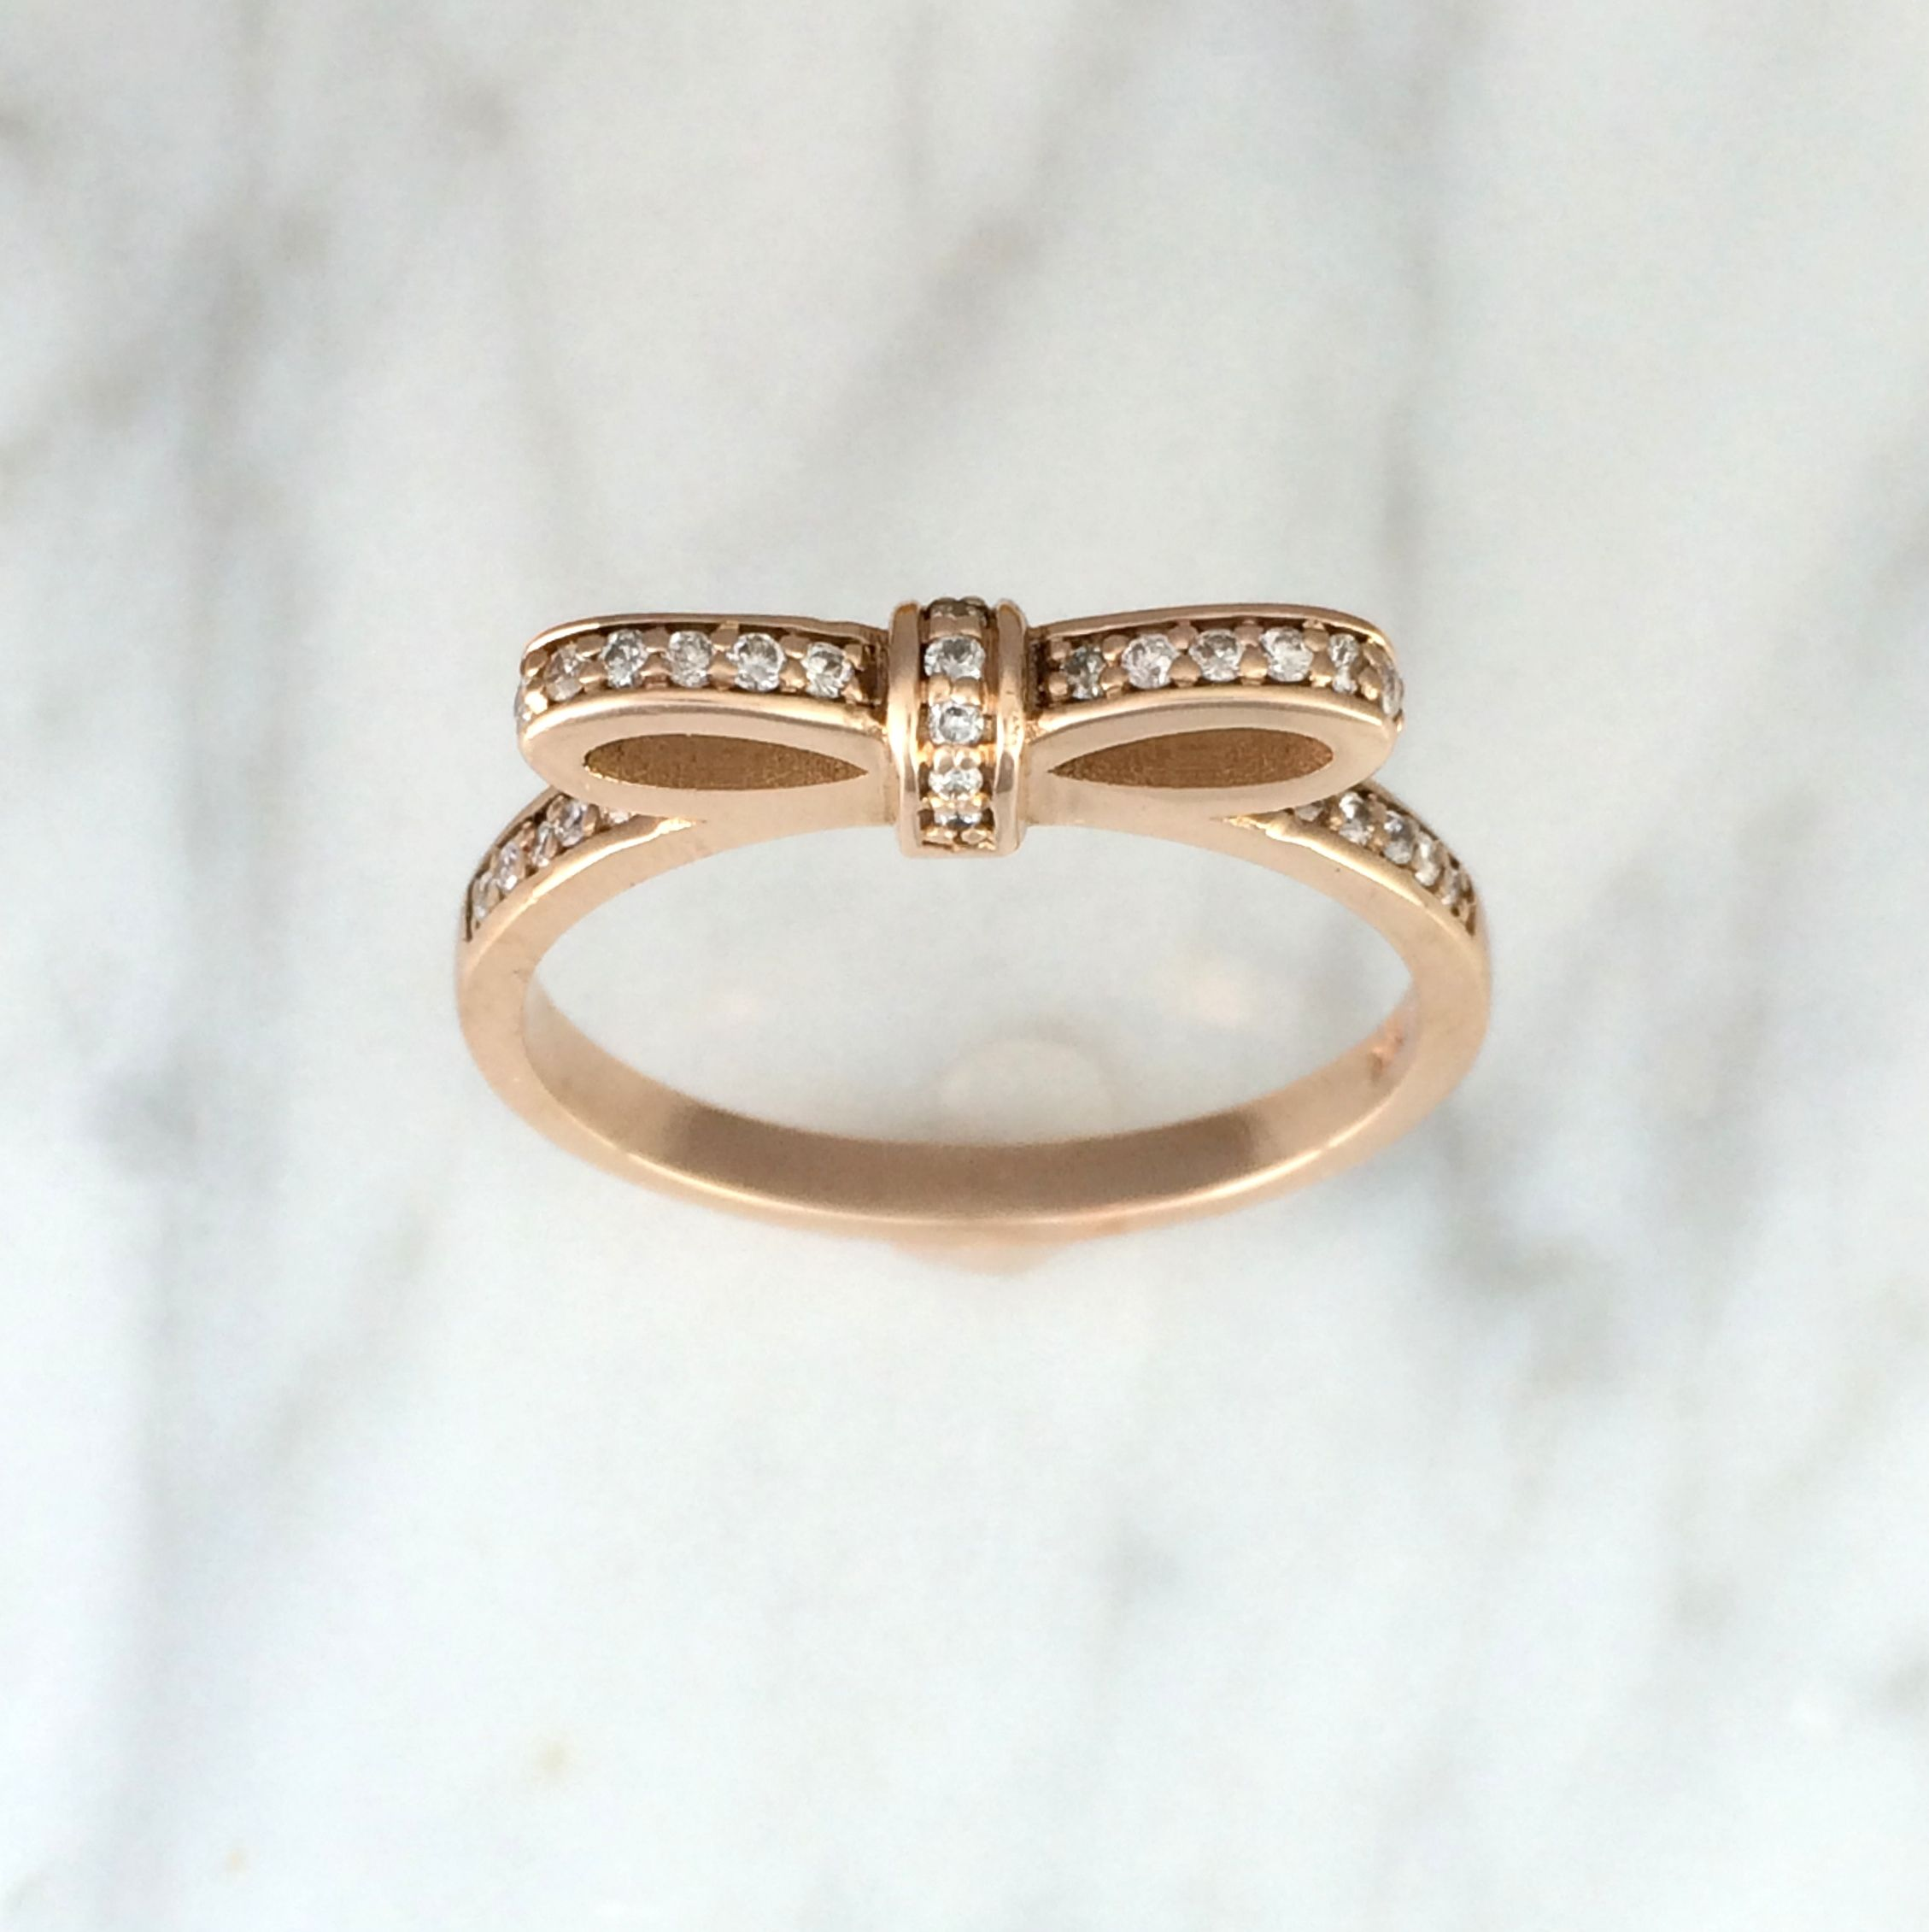 bands band carat ring lifetime gold overview rose and wedding diamond